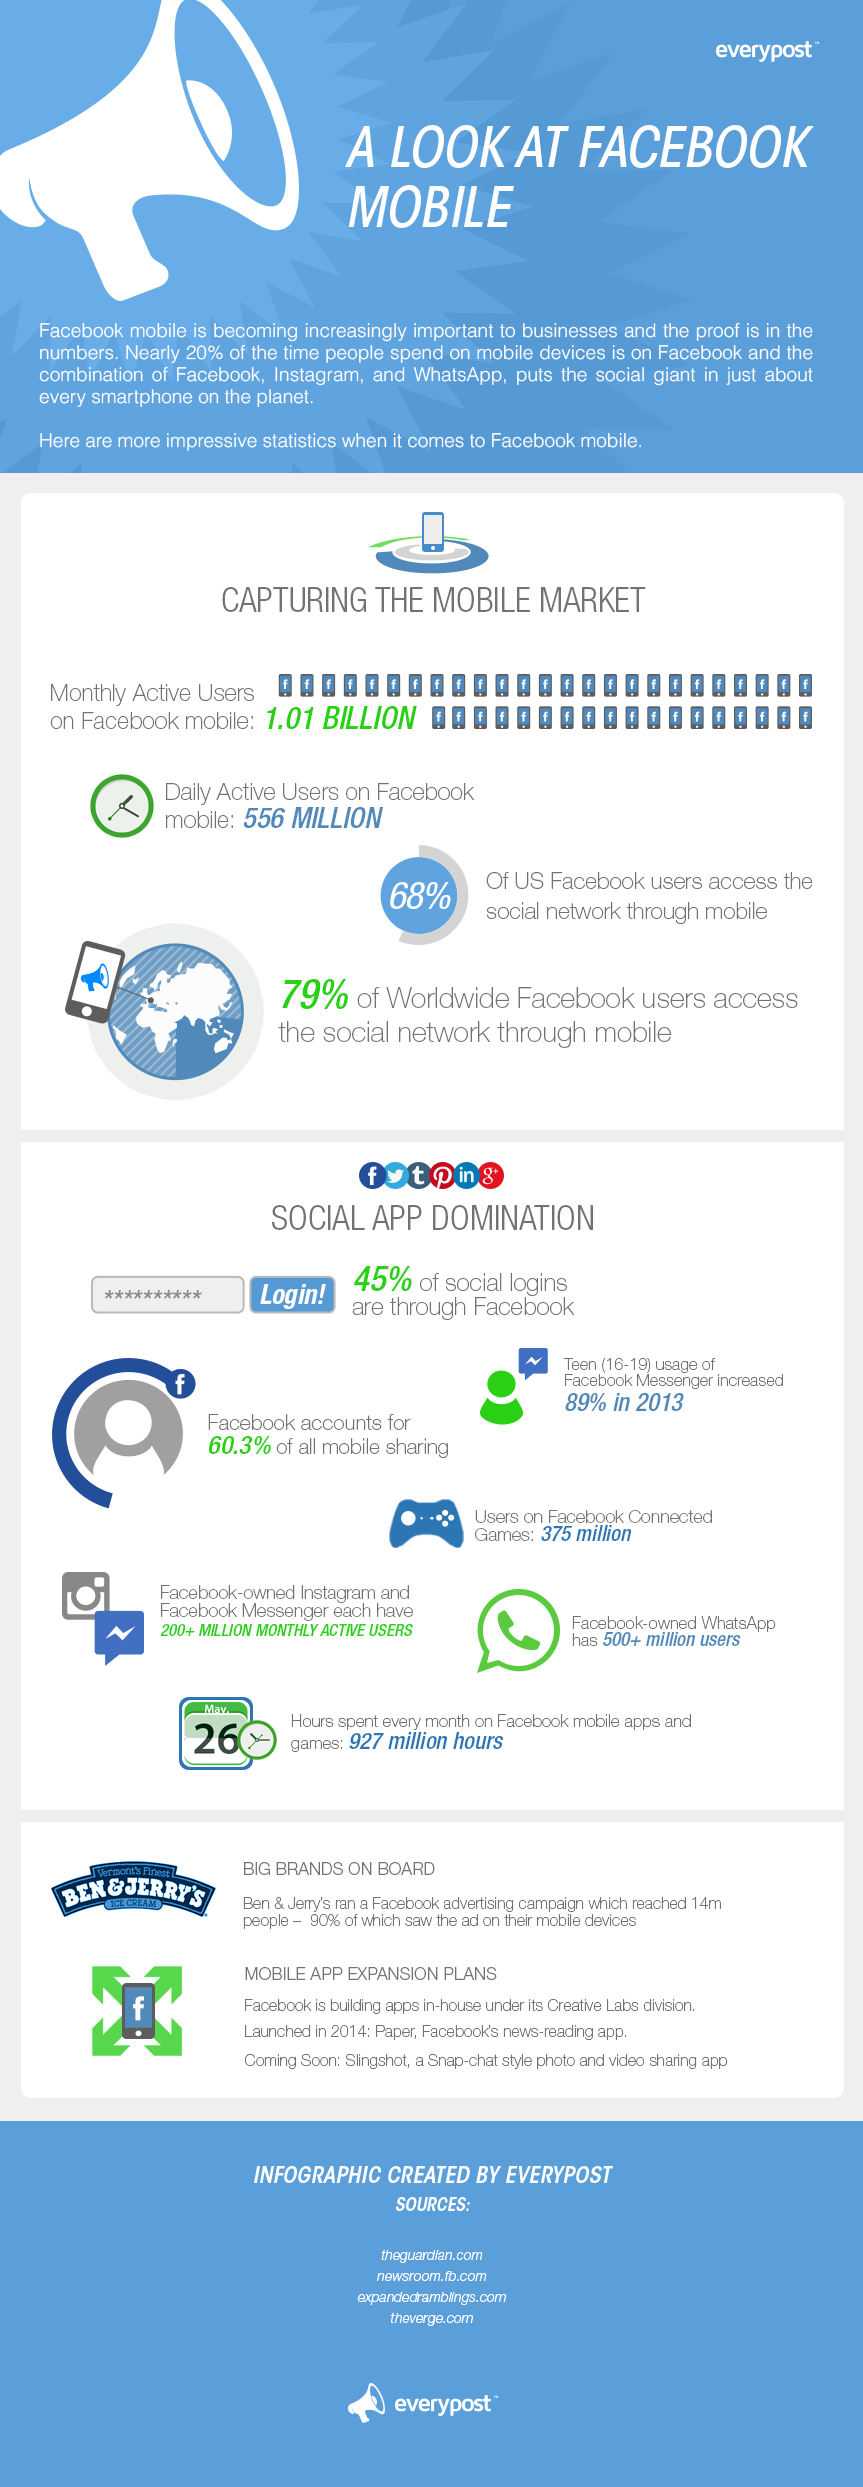 Facebook Mobile and App Trends in 2014 - #infographic #socialmedia